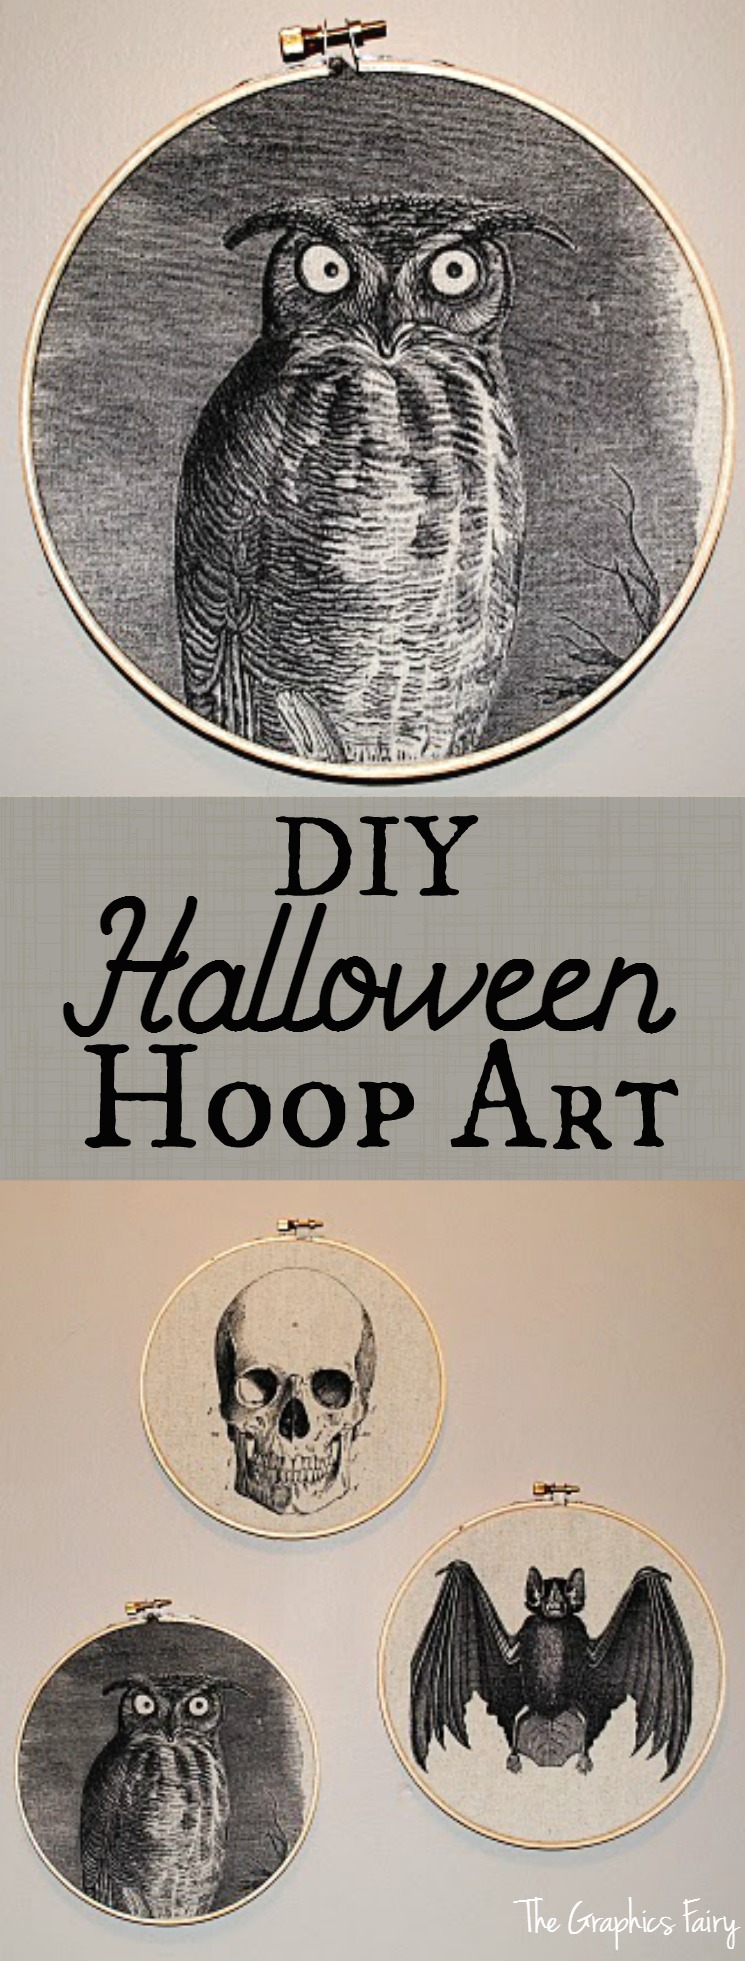 DIY Halloween Hoop Art - The Graphics Fairy